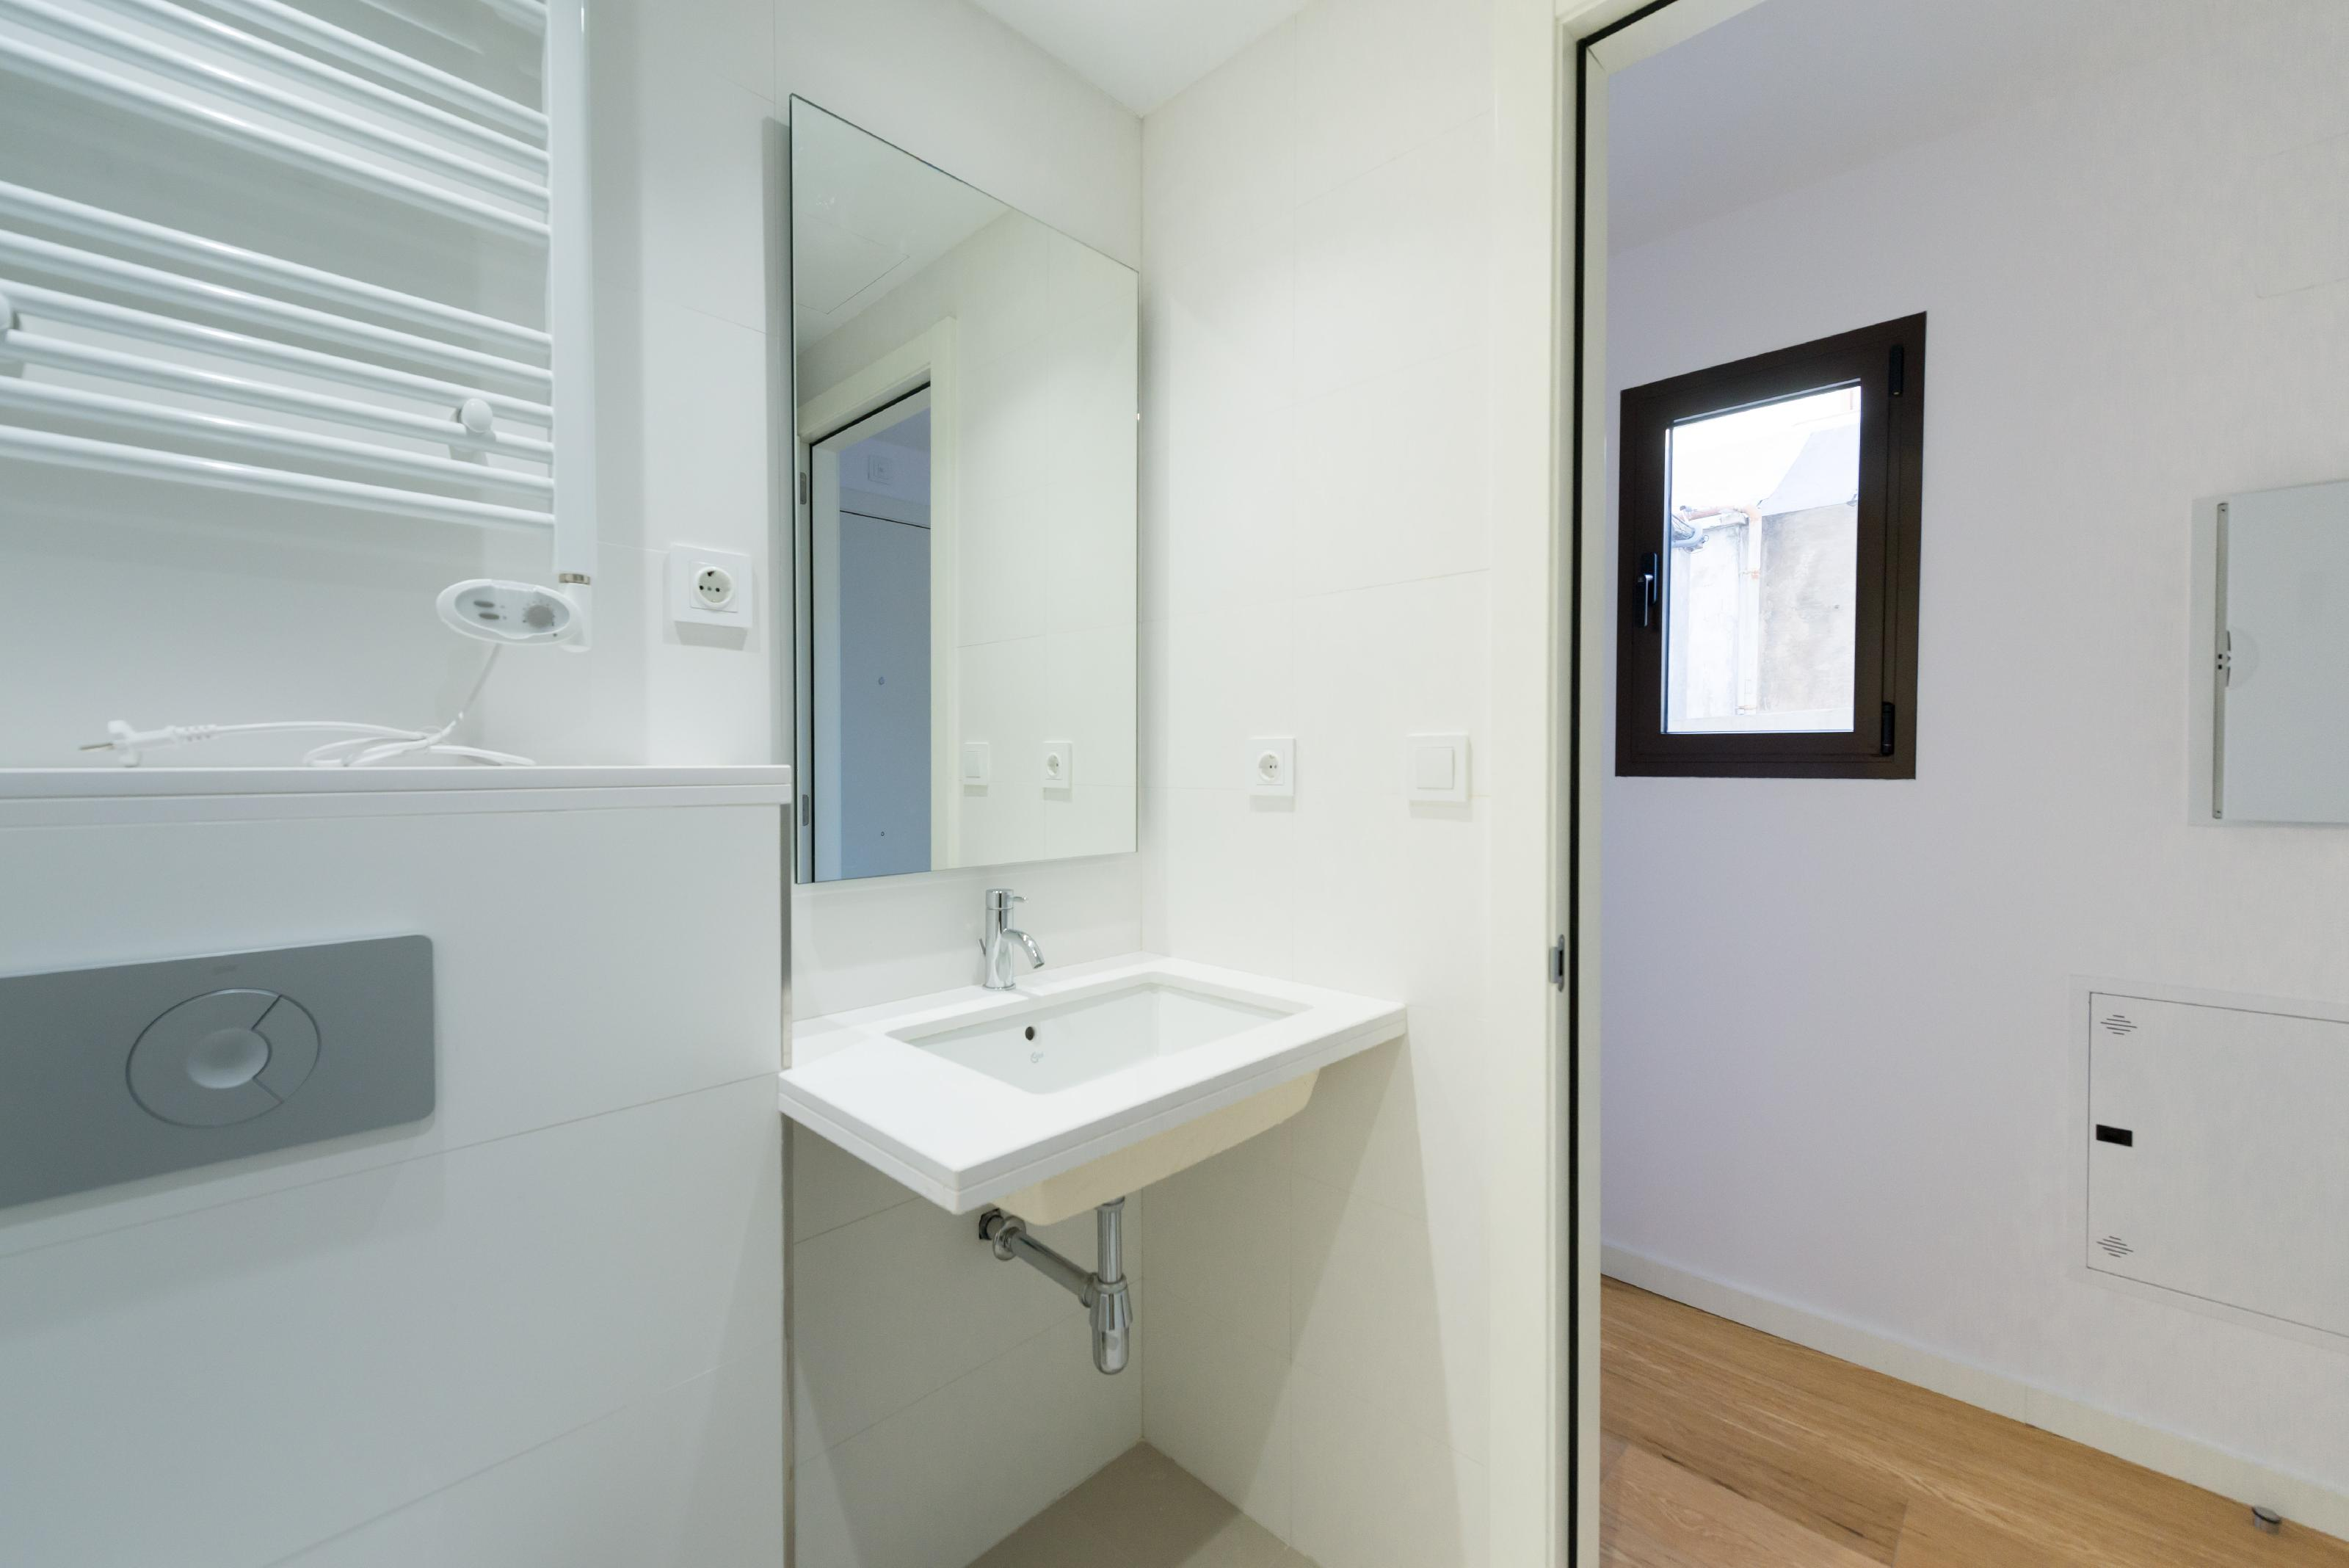 216125 Apartment for sale in Eixample, Old Left Eixample 16